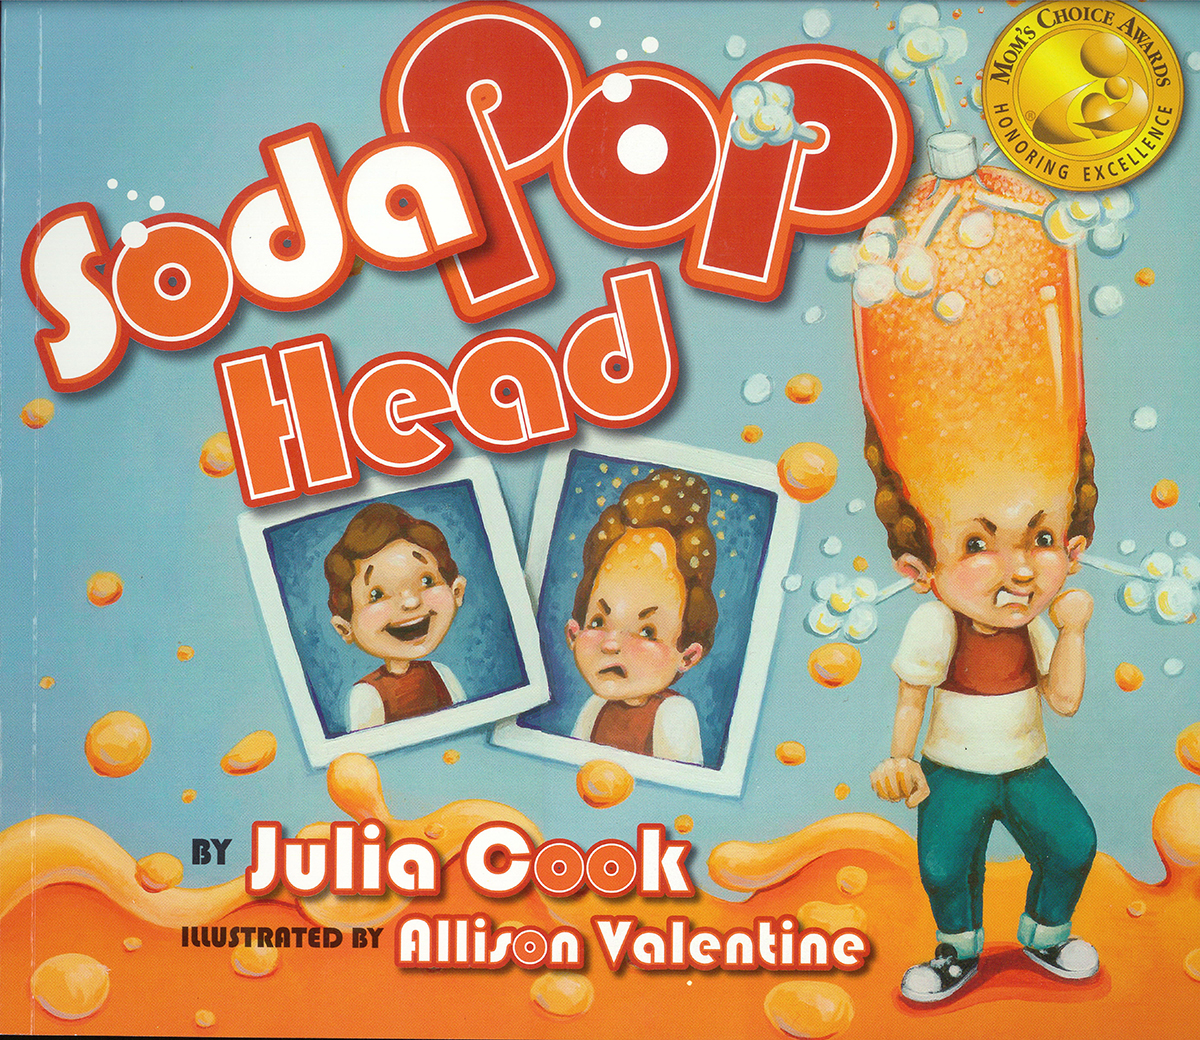 Soda Pop Head